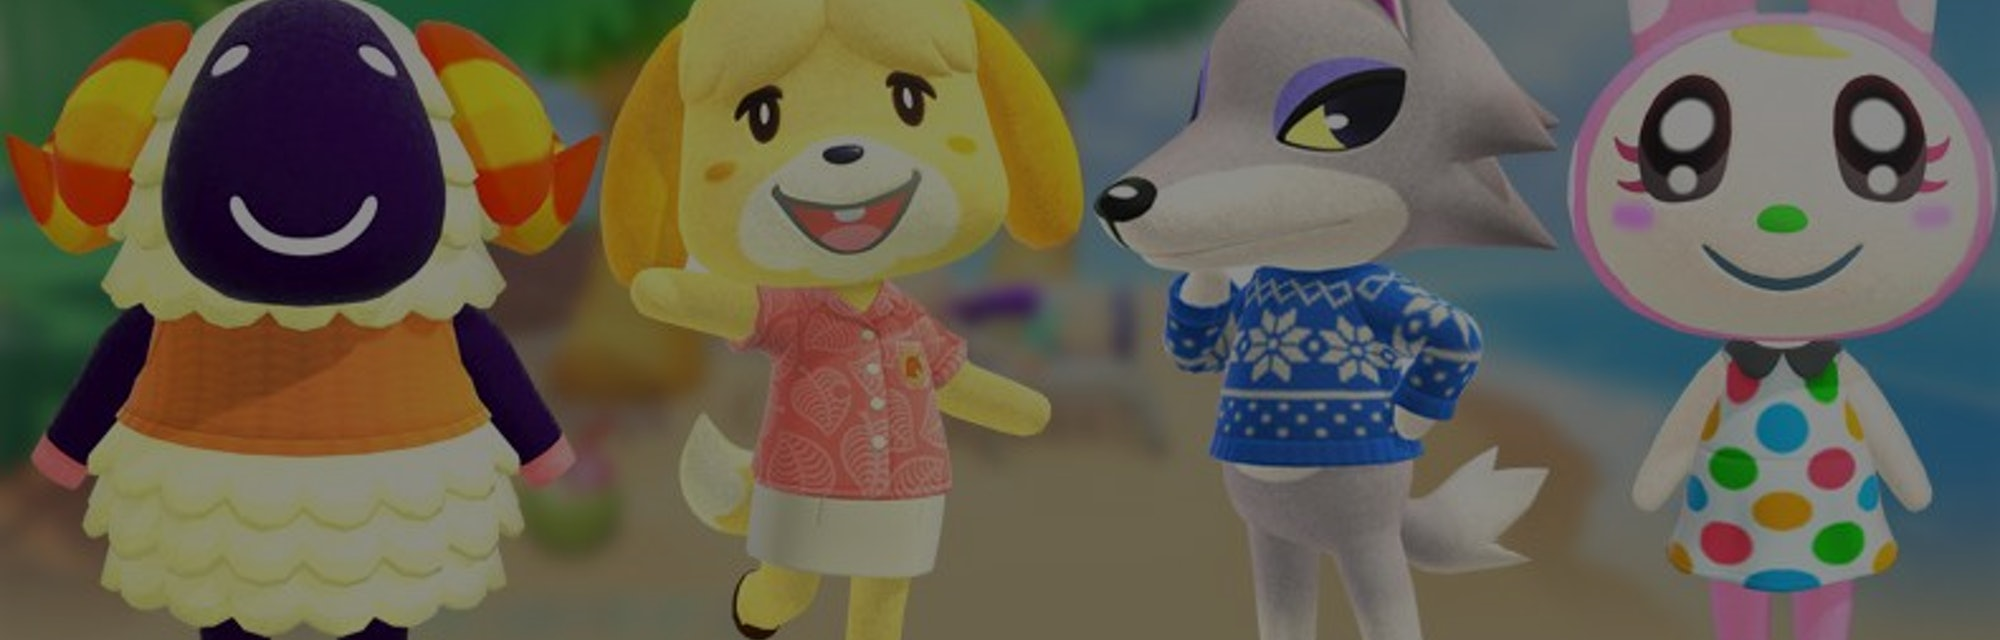 cute animal crossing characters names